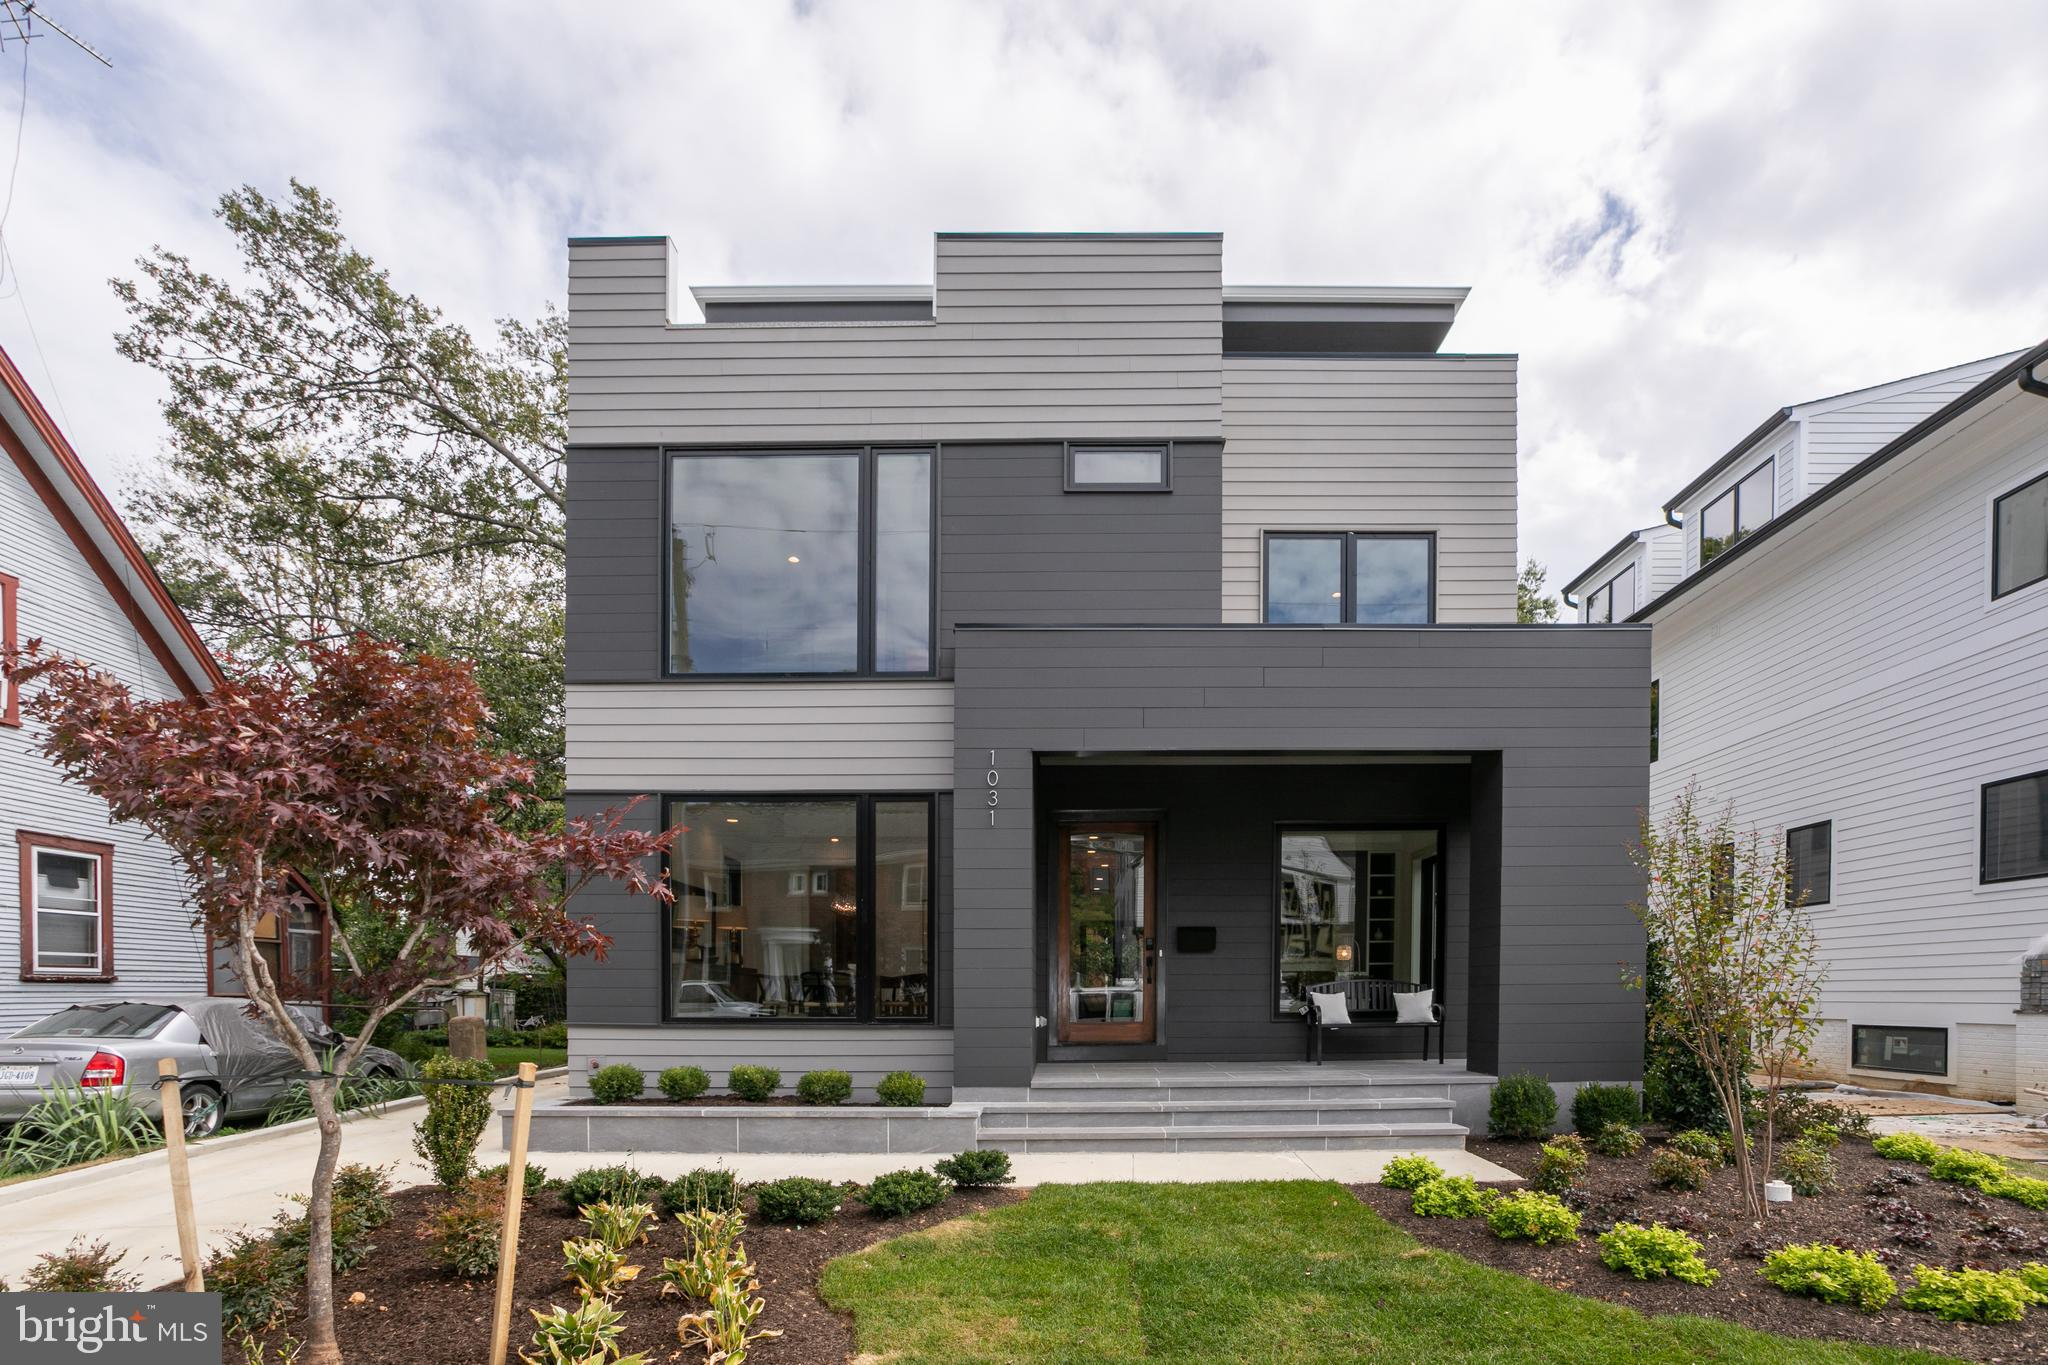 Cherry Hill Custom Homes presents this modern gem in the heart of Clarendon. The contemporary design